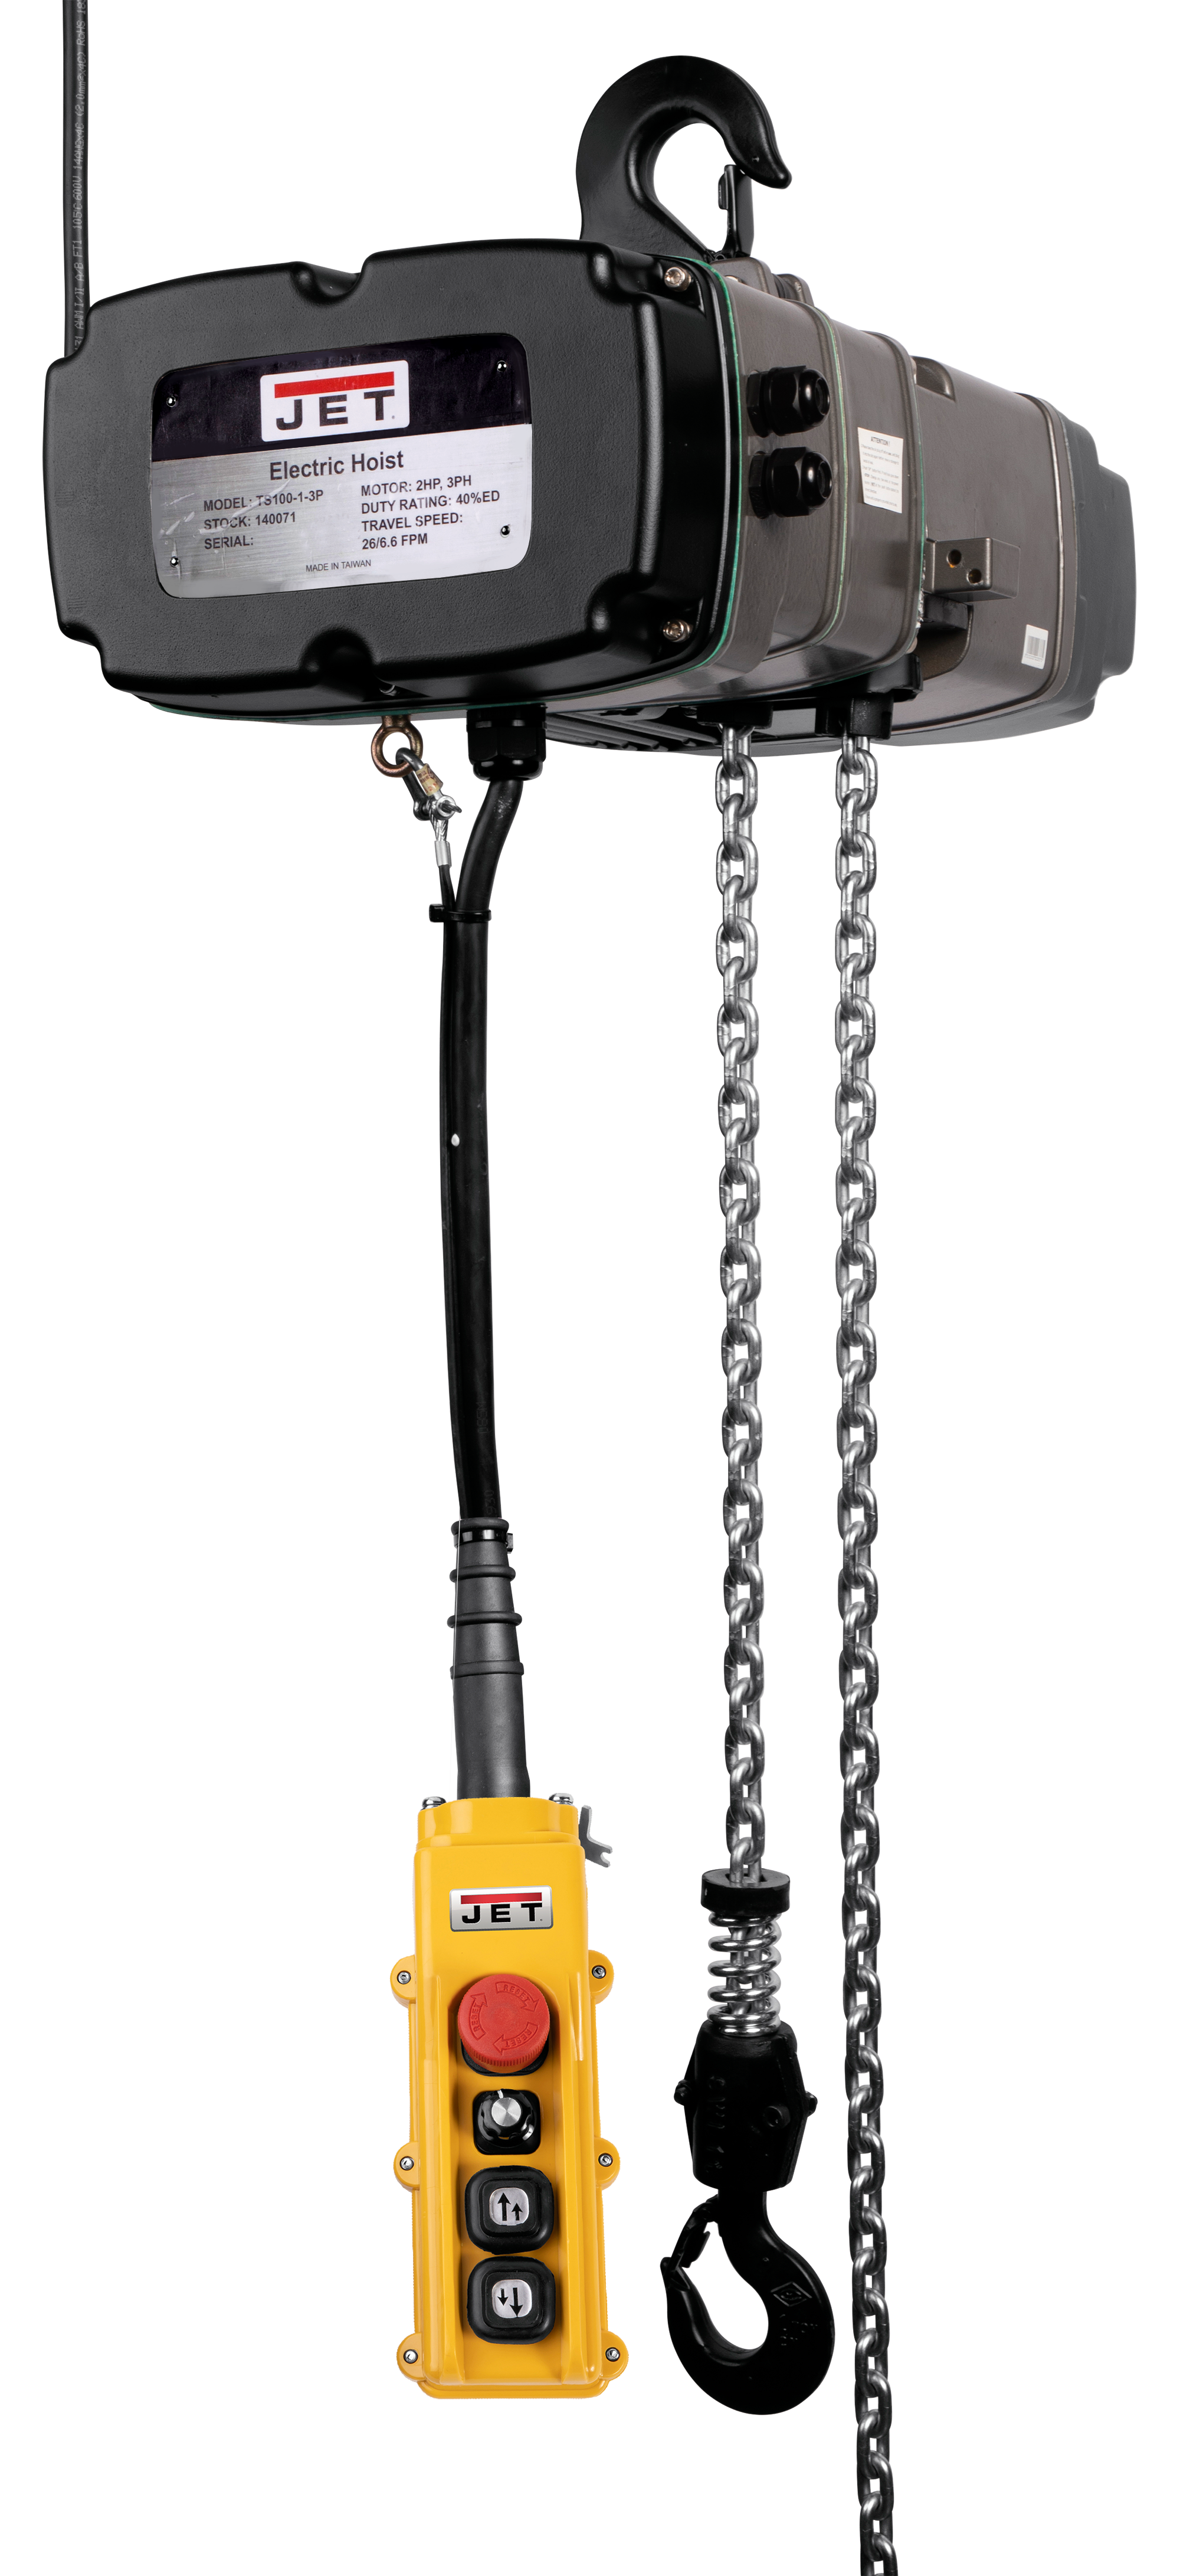 TS300-460-010, 3-Ton Two Speed Electric Chain Hoist  3-Phase 10' Lift